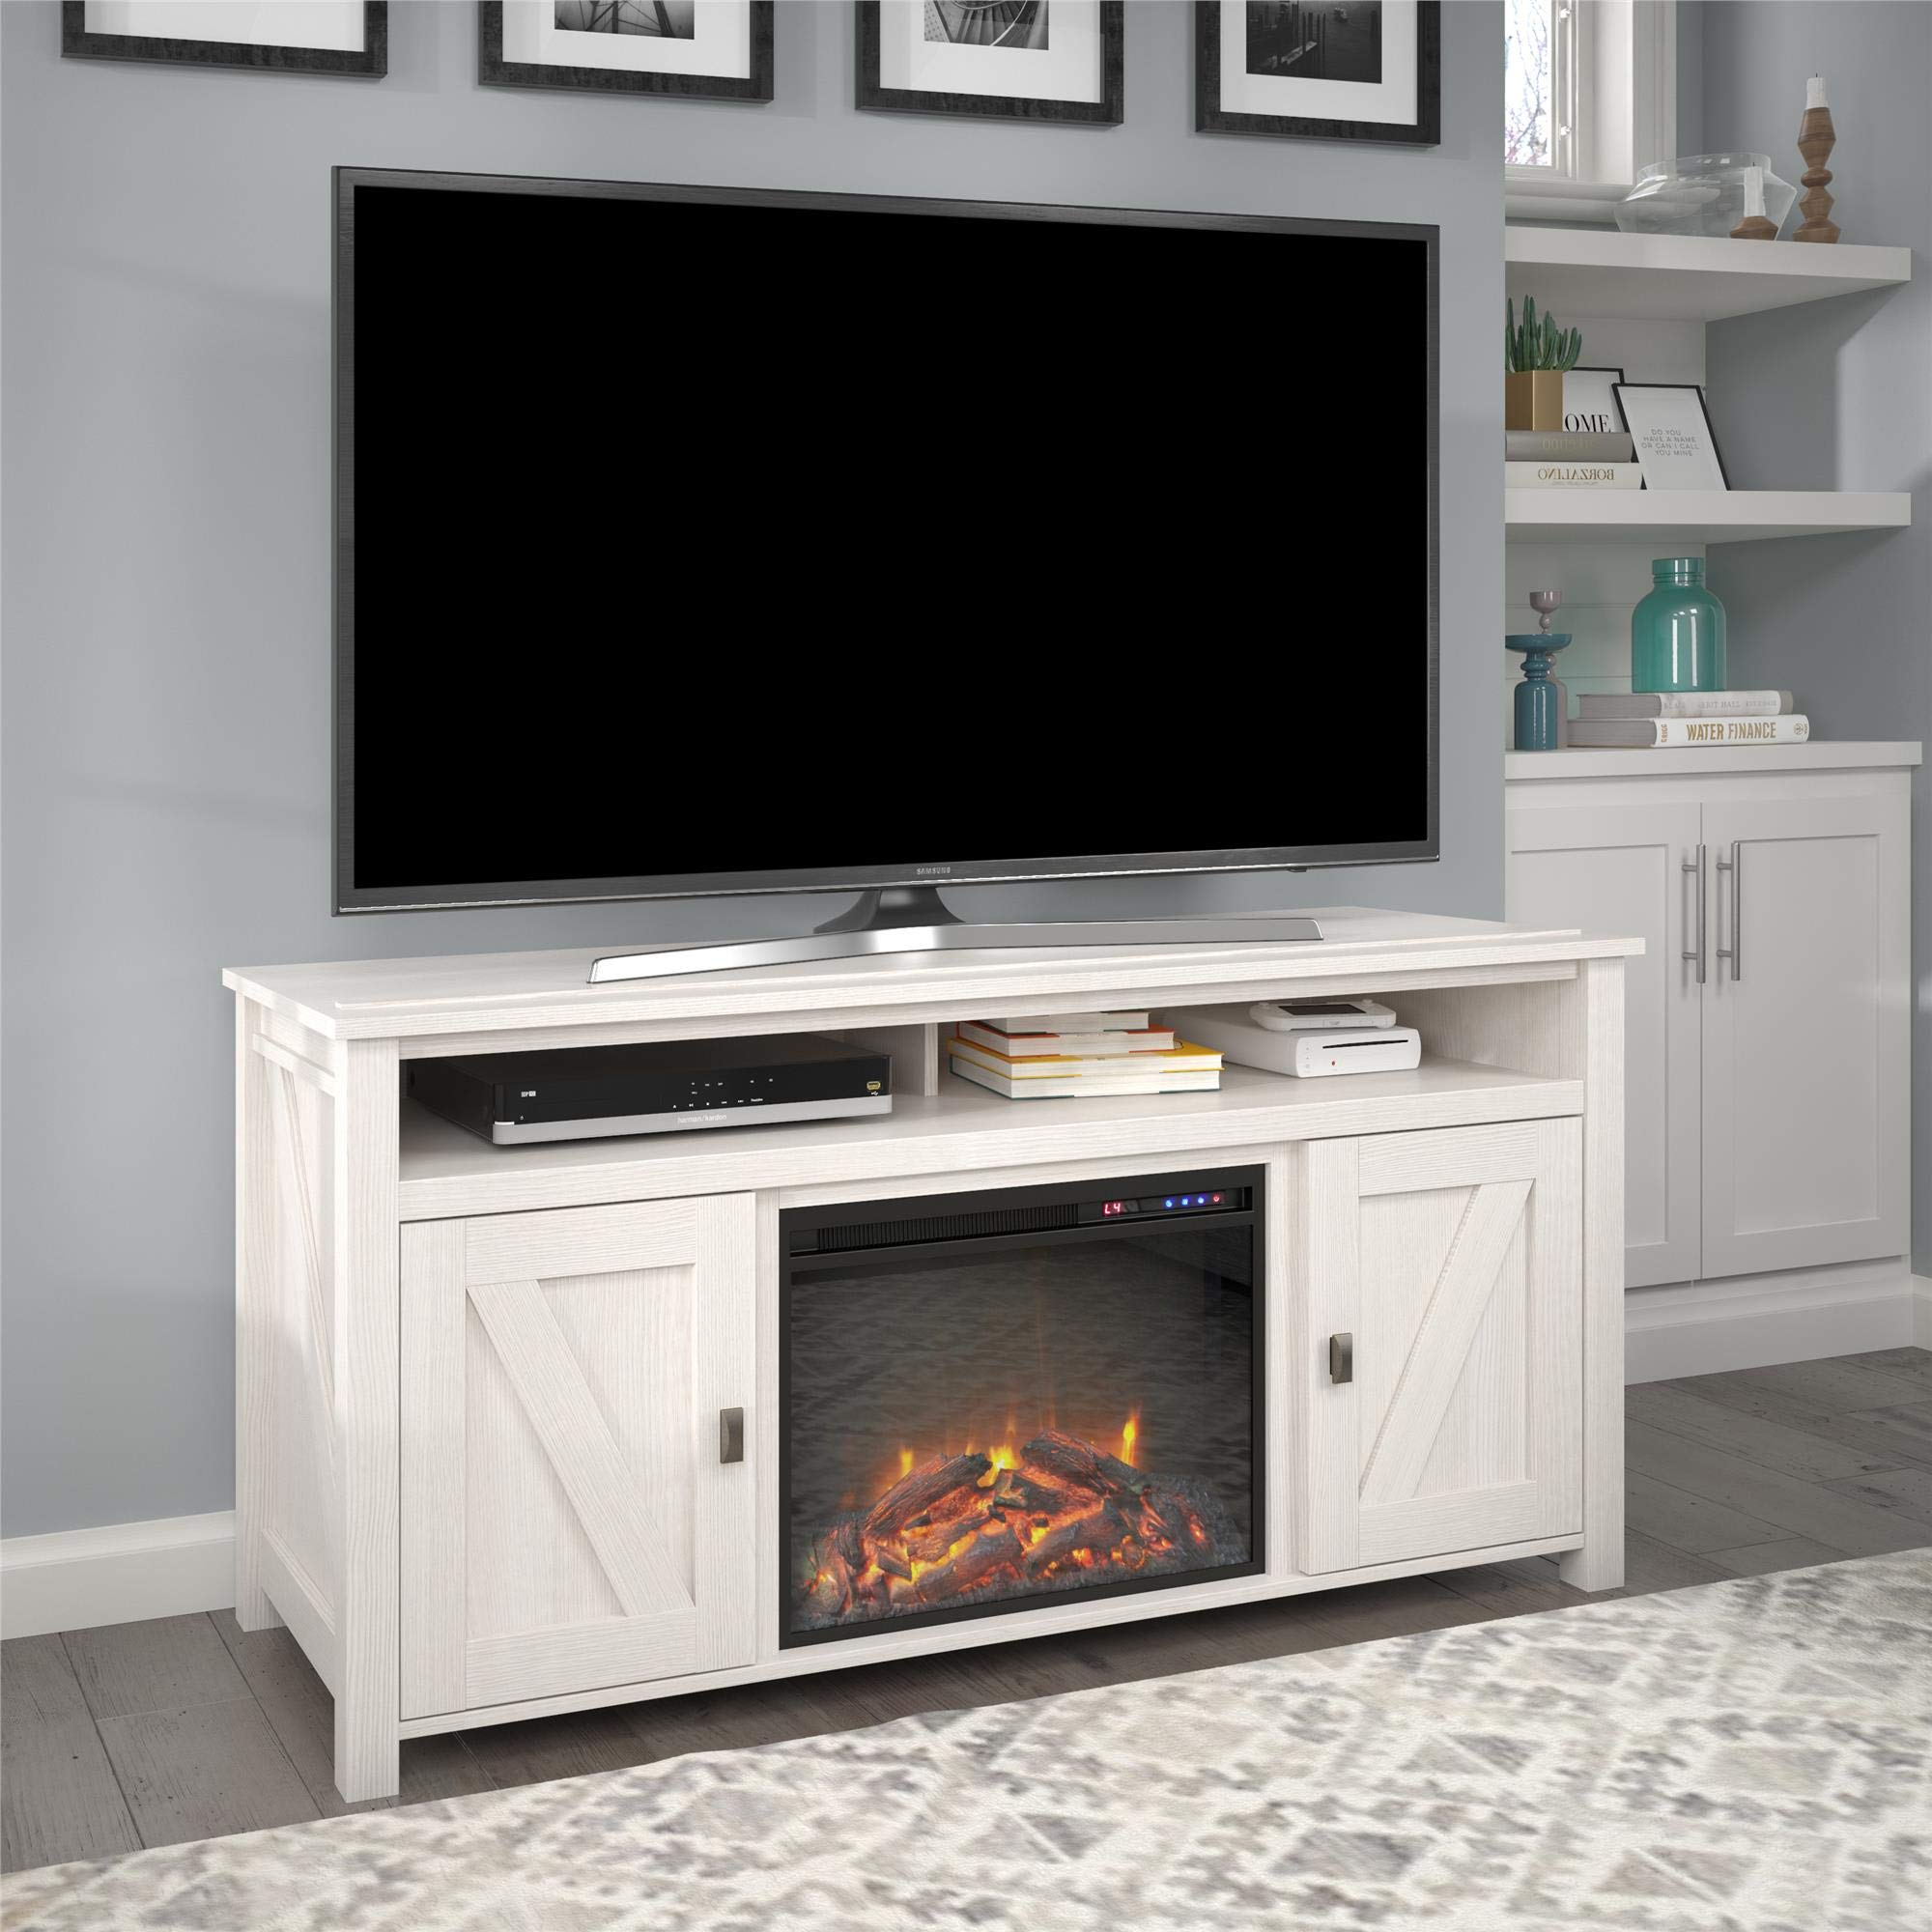 Ameriwood Home Farmington Electric Fireplace Console 60'', Ivory Pine TV Stand by Ameriwood Home